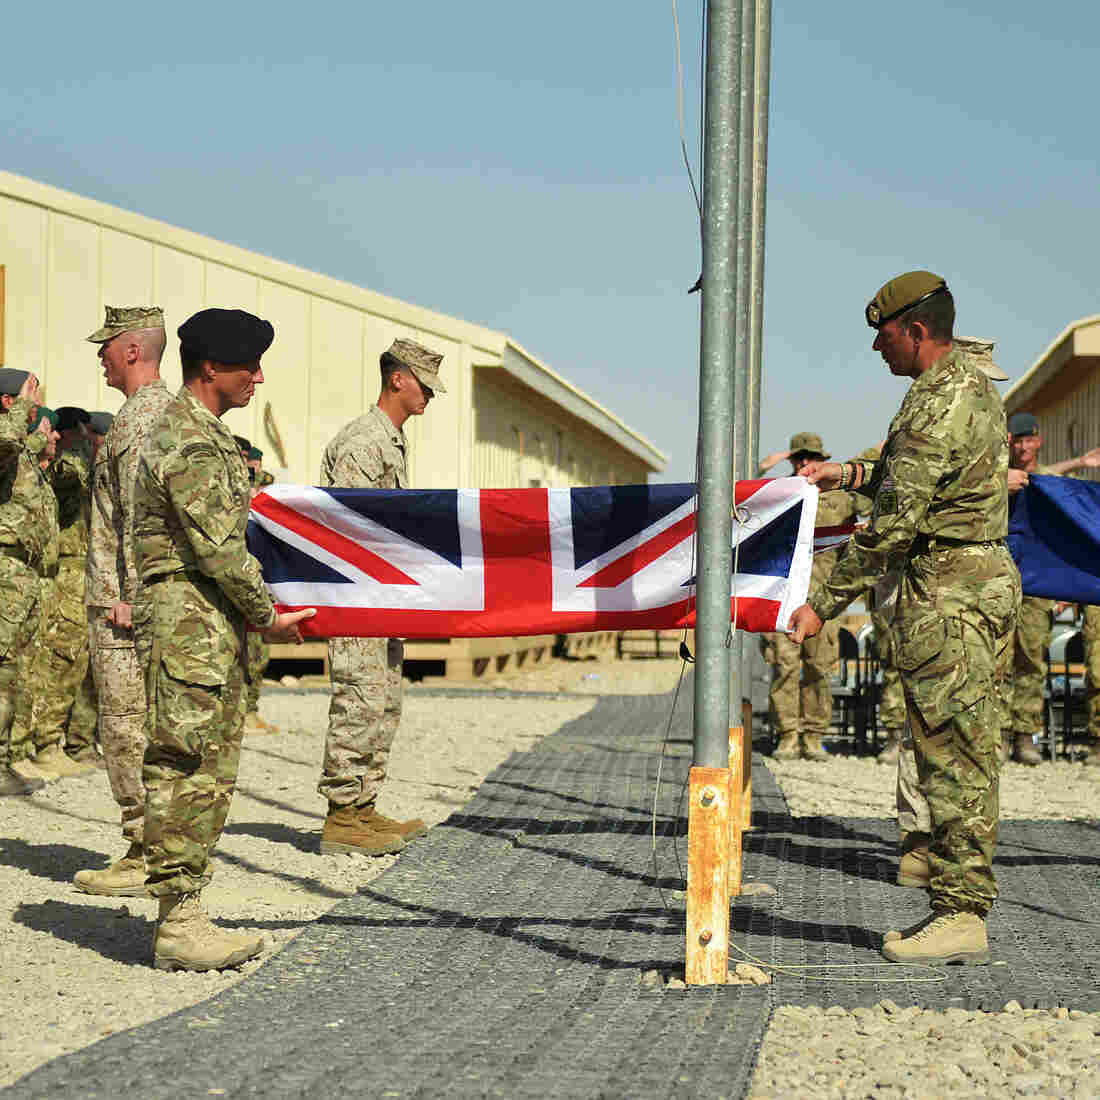 U.S. Marines Leave Afghanistan, Along With British Force